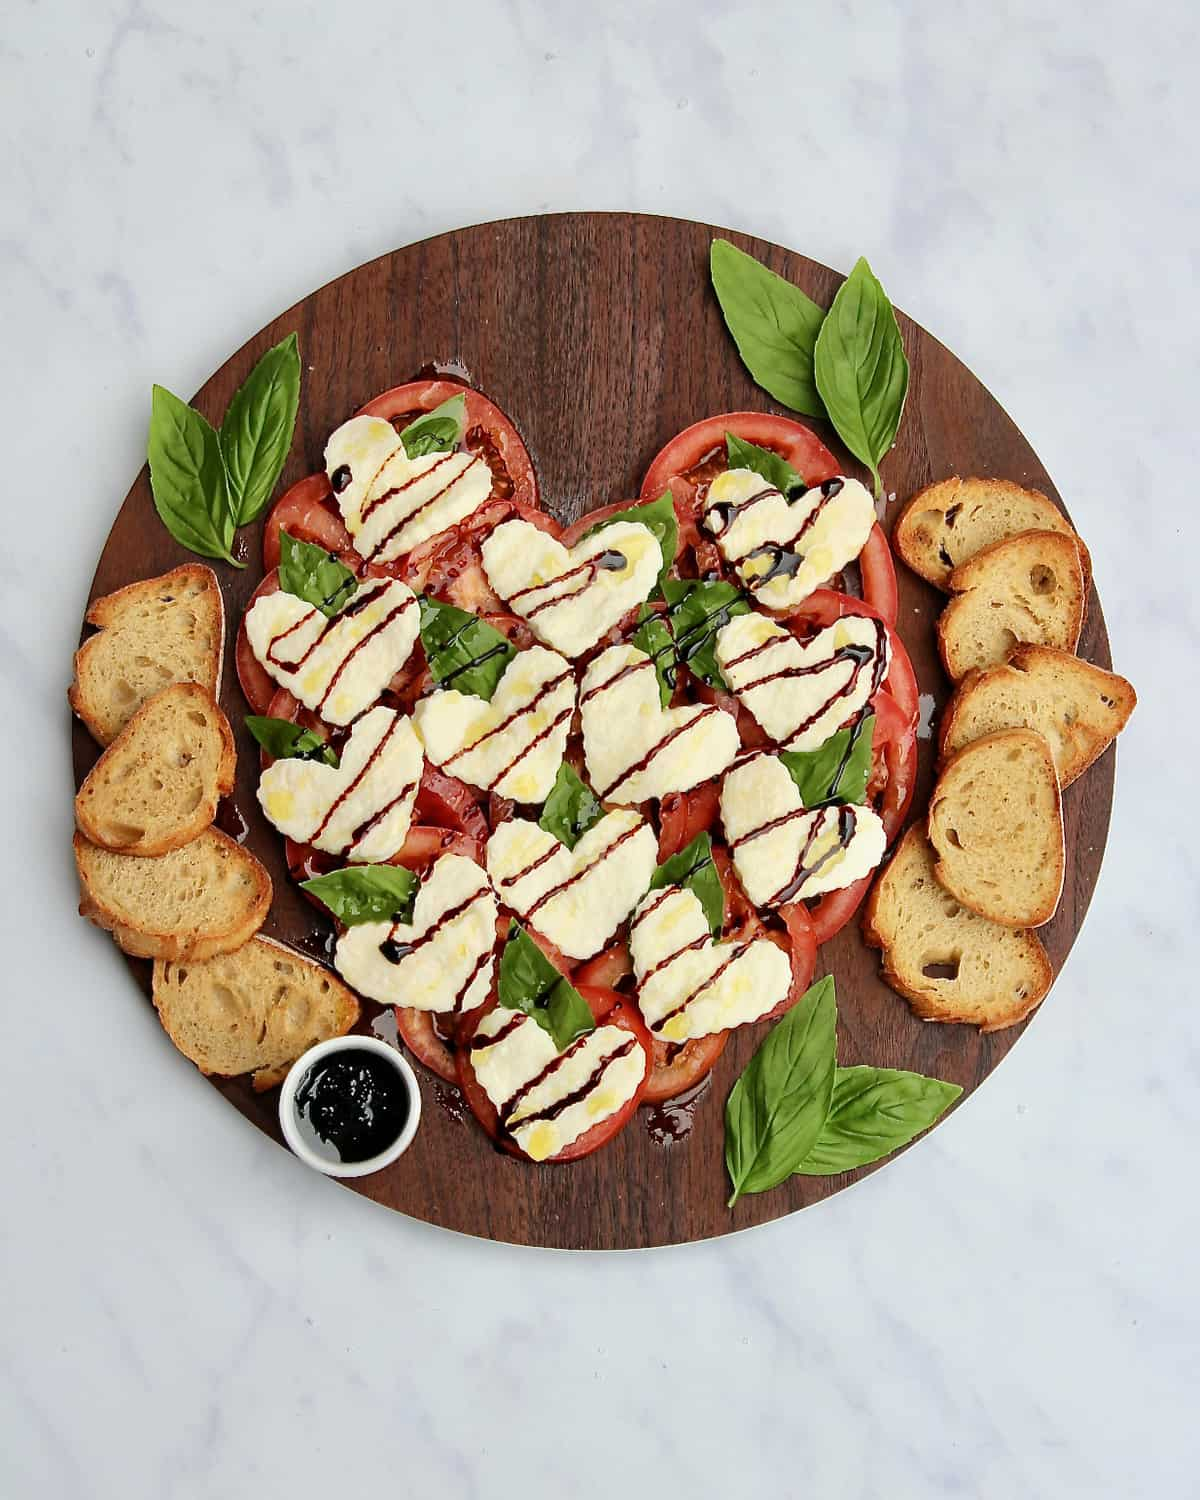 Heart Carprese Salad Board by The BakerMama